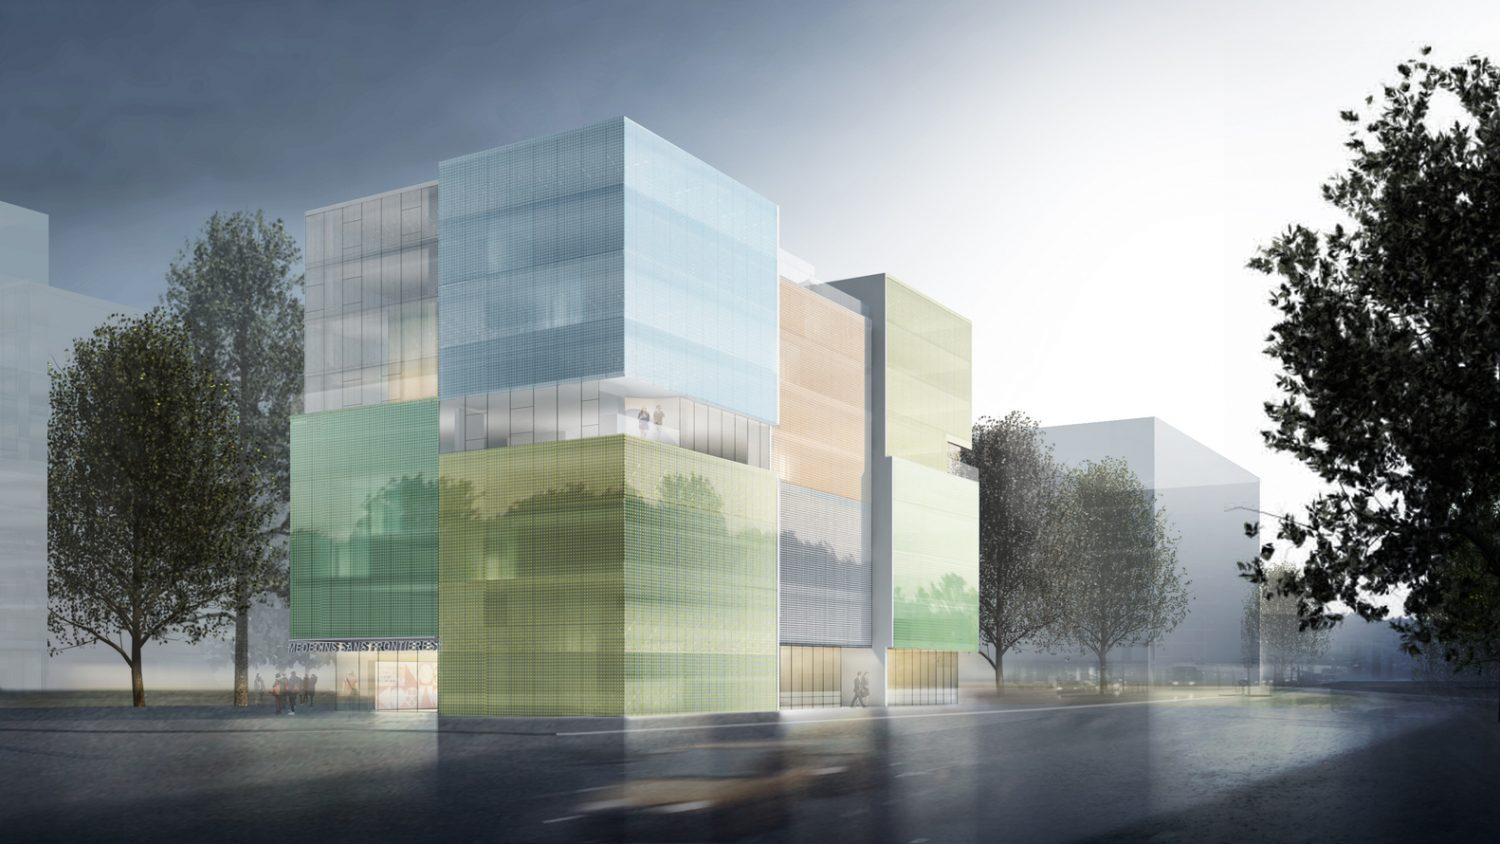 Photovoltaic Glass Building for Doctors Without Borders' Geneva Office, Steven Holl Architects, IGS Magazine, 2